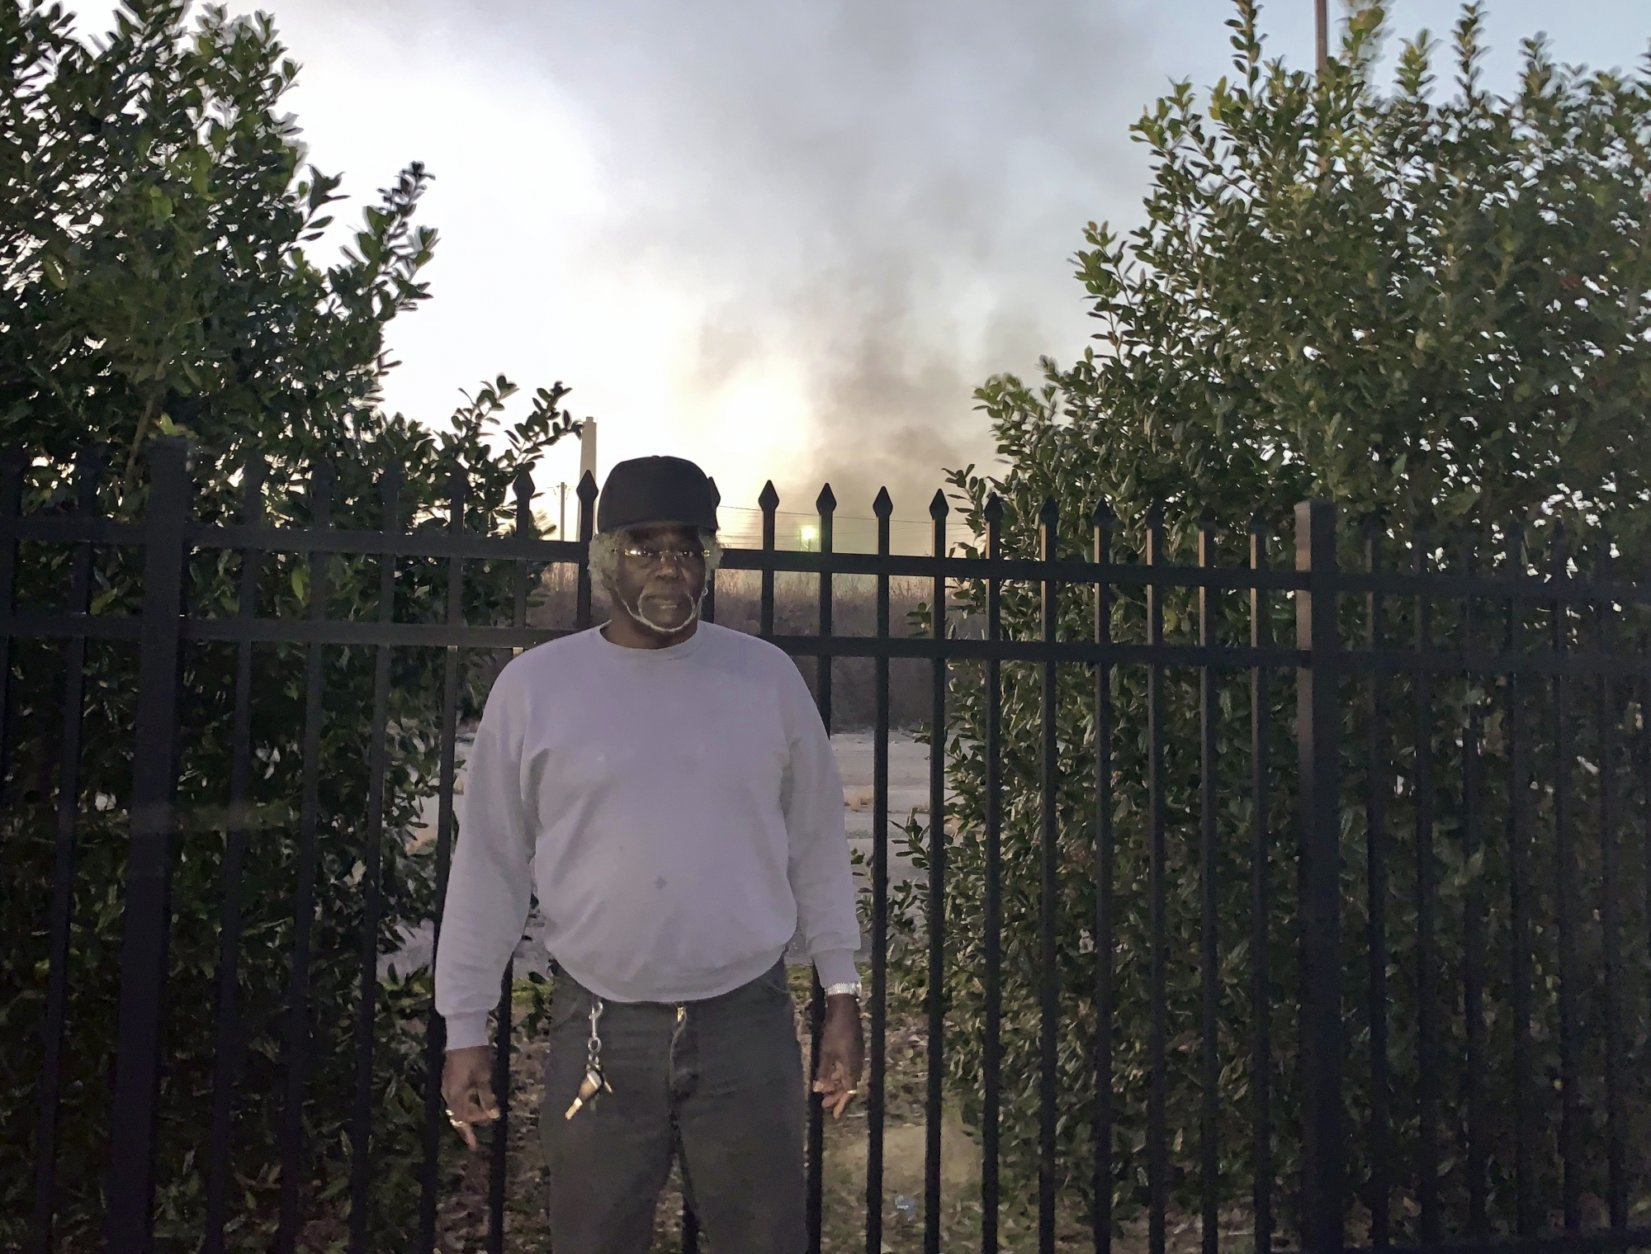 """Charlie Powell stands outside one of the industrial sites at the 35th Avenue Superfund site in Birmingham, Ala., Wednesday, Jan. 9, 2019. The EPA has been removing contaminated soil from yards in the neighborhoods within the site. The partial government shutdown has forced suspension of federal work at the nation's Superfund sites unless it is determined there is an """"imminent threat"""" to life or property. (AP Photo/Kimberly Chandler)"""